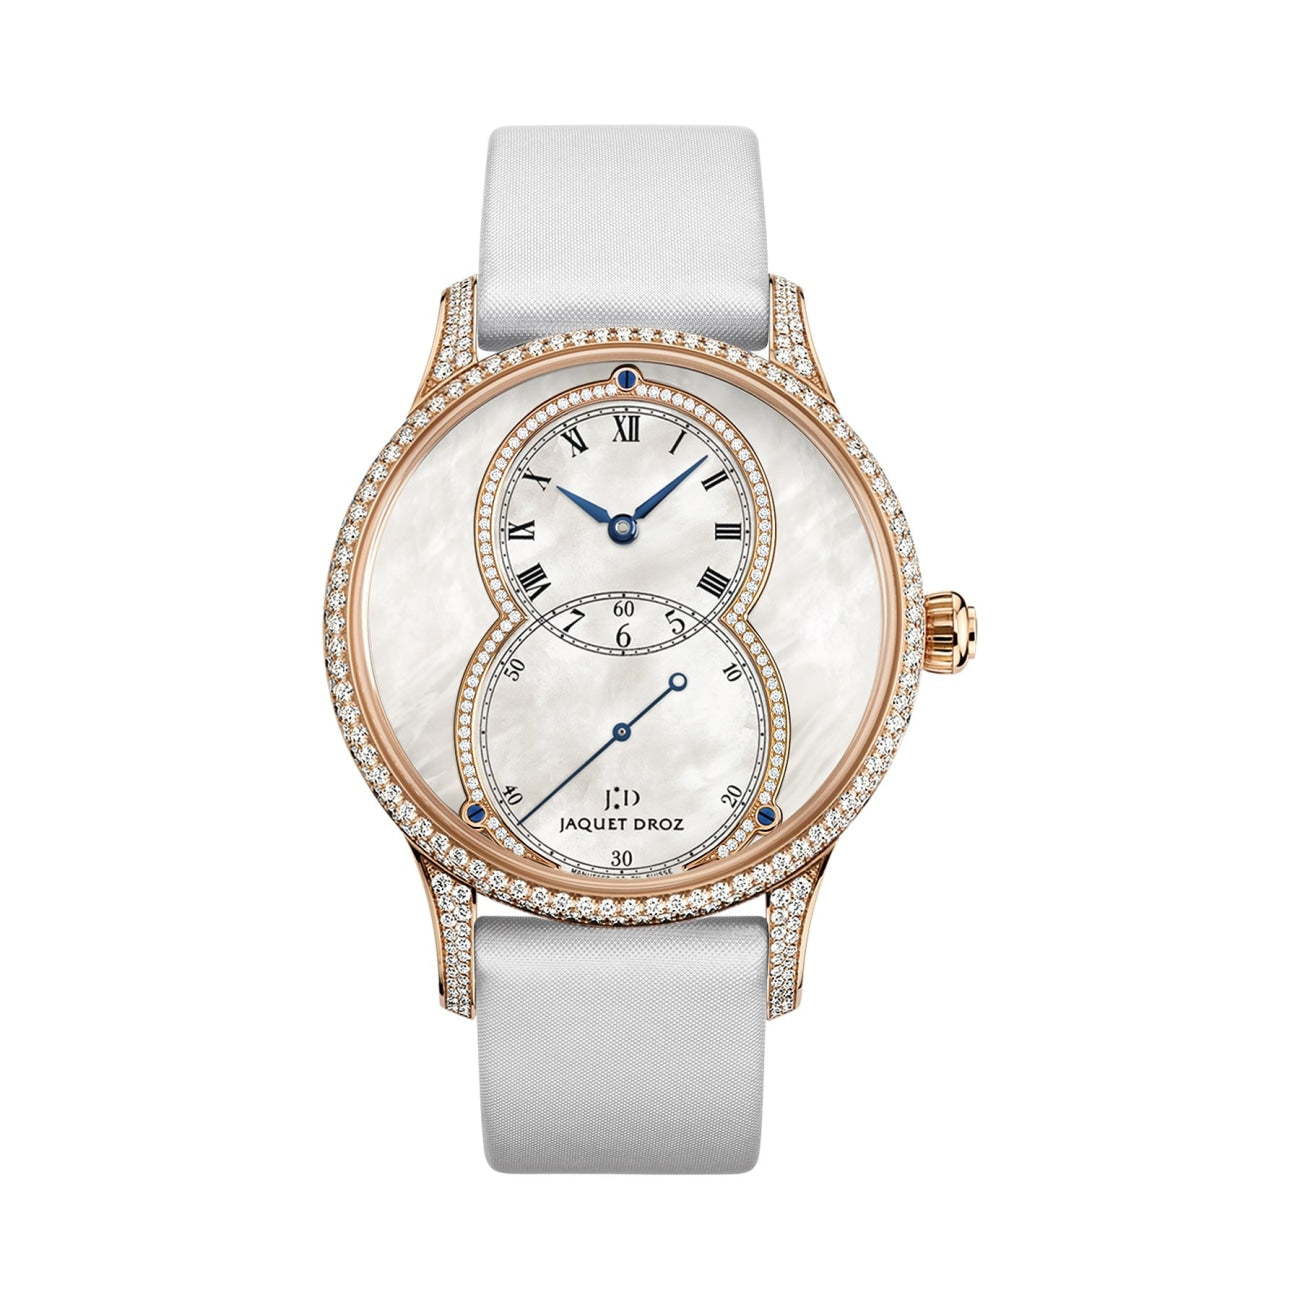 Jaquet Droz Watches - GRANDE SECONDE MOTHER-OF-PEARL | Manfredi Jewels